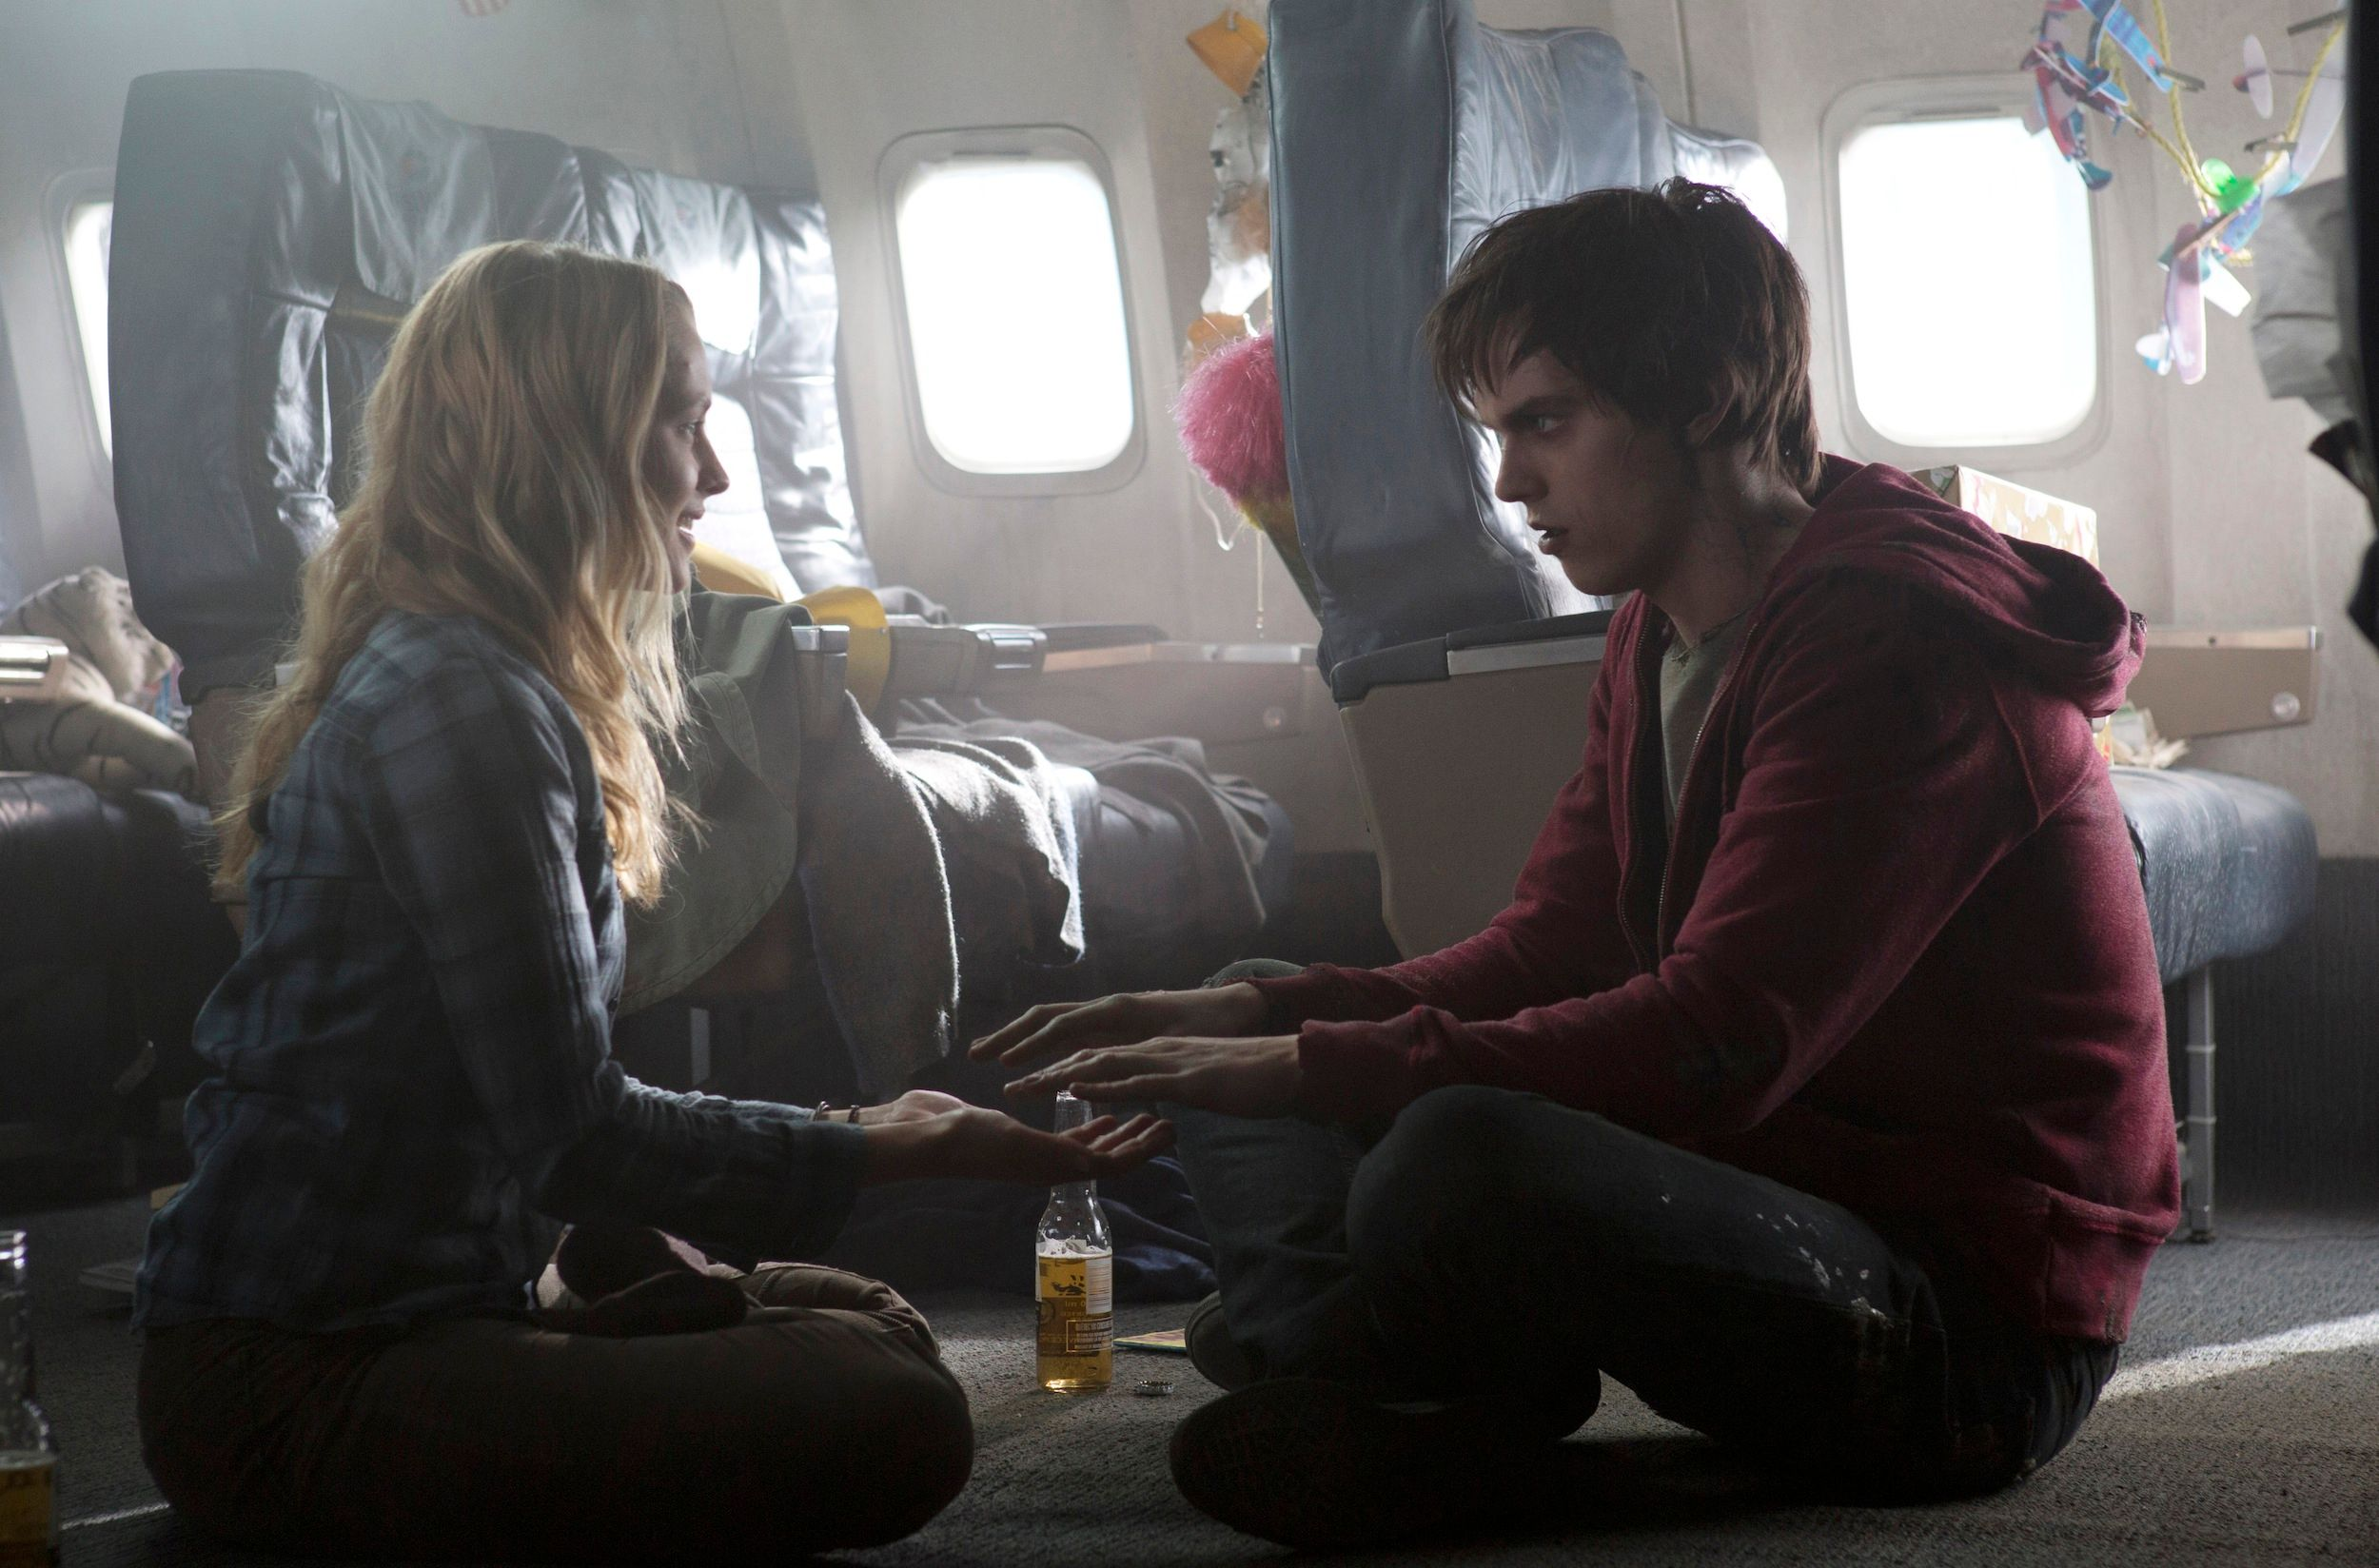 matt visits the set of warm bodies, dies, and becomes a zombie